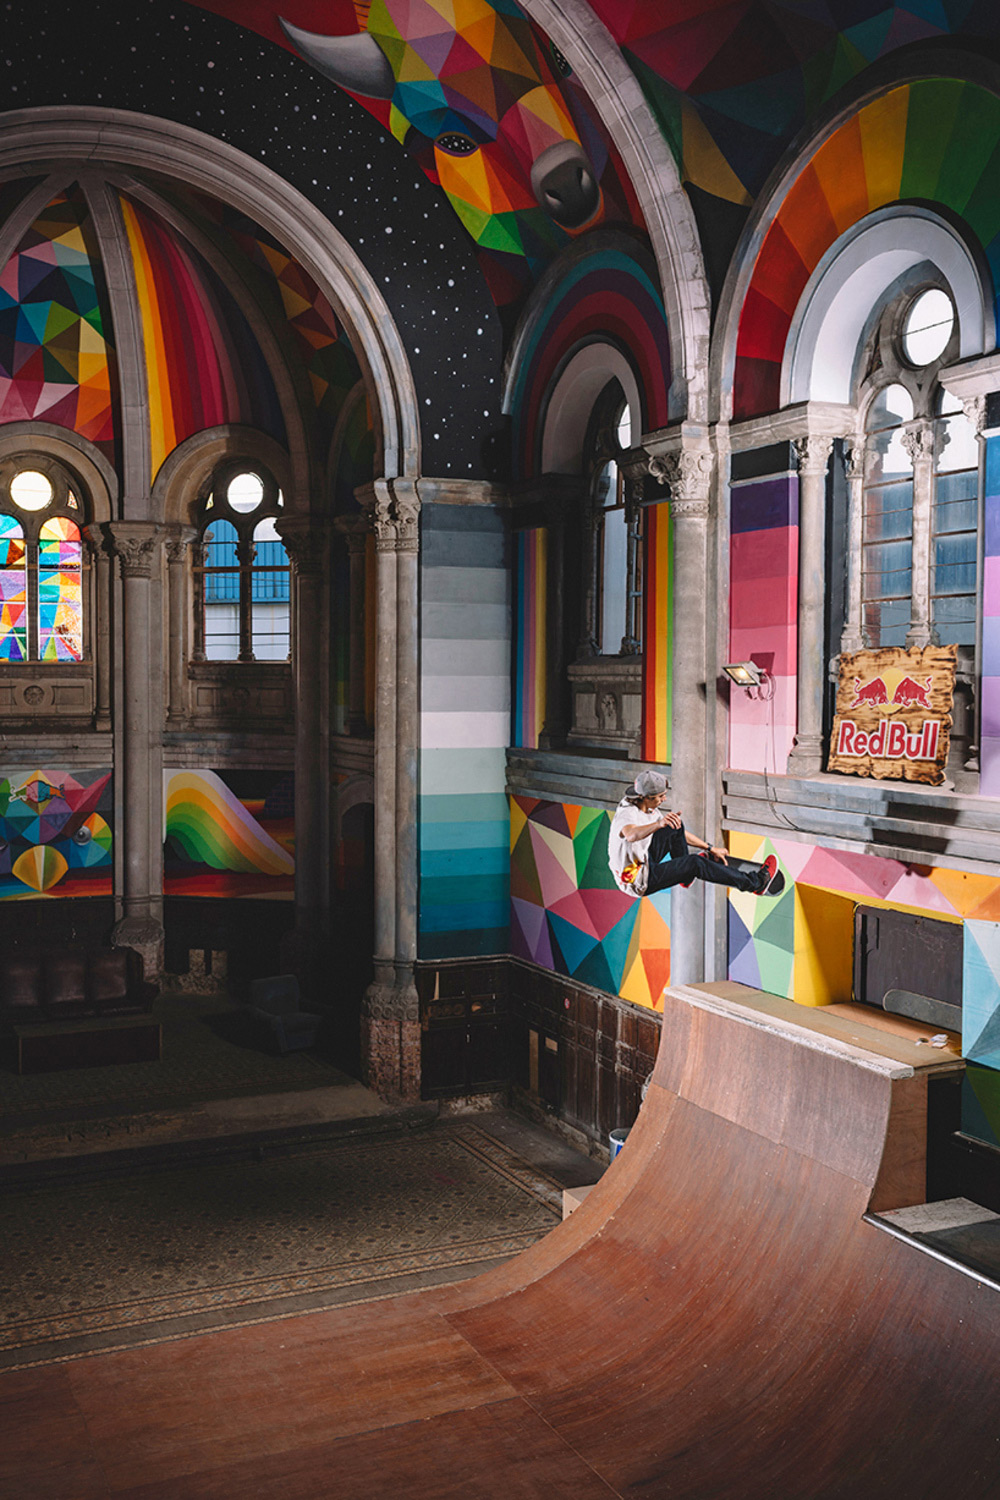 kaos_temple_skate_park_church_okuda_san_miguel_08